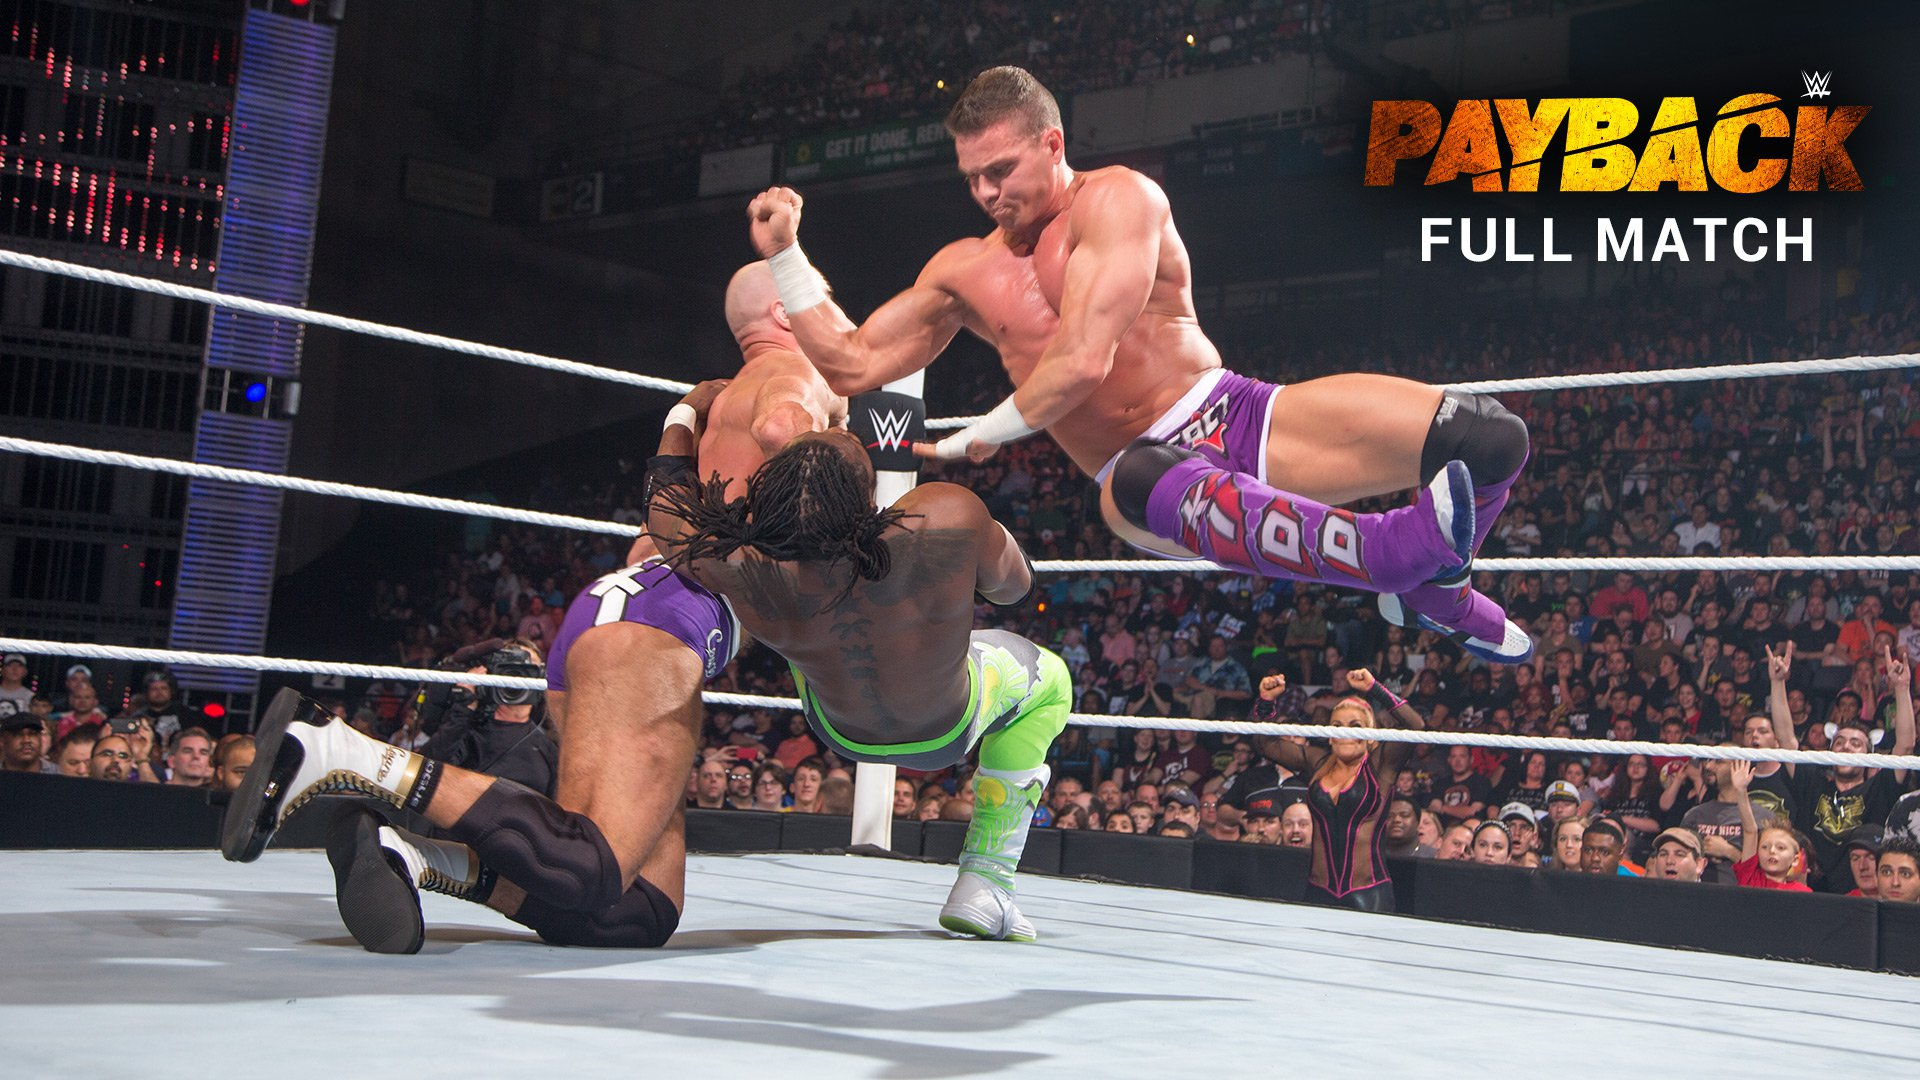 WWE Tag Team Title 2-out-of-3 Falls Match: WWE Payback 2015 (Full Match - WWE Network Exclusive)